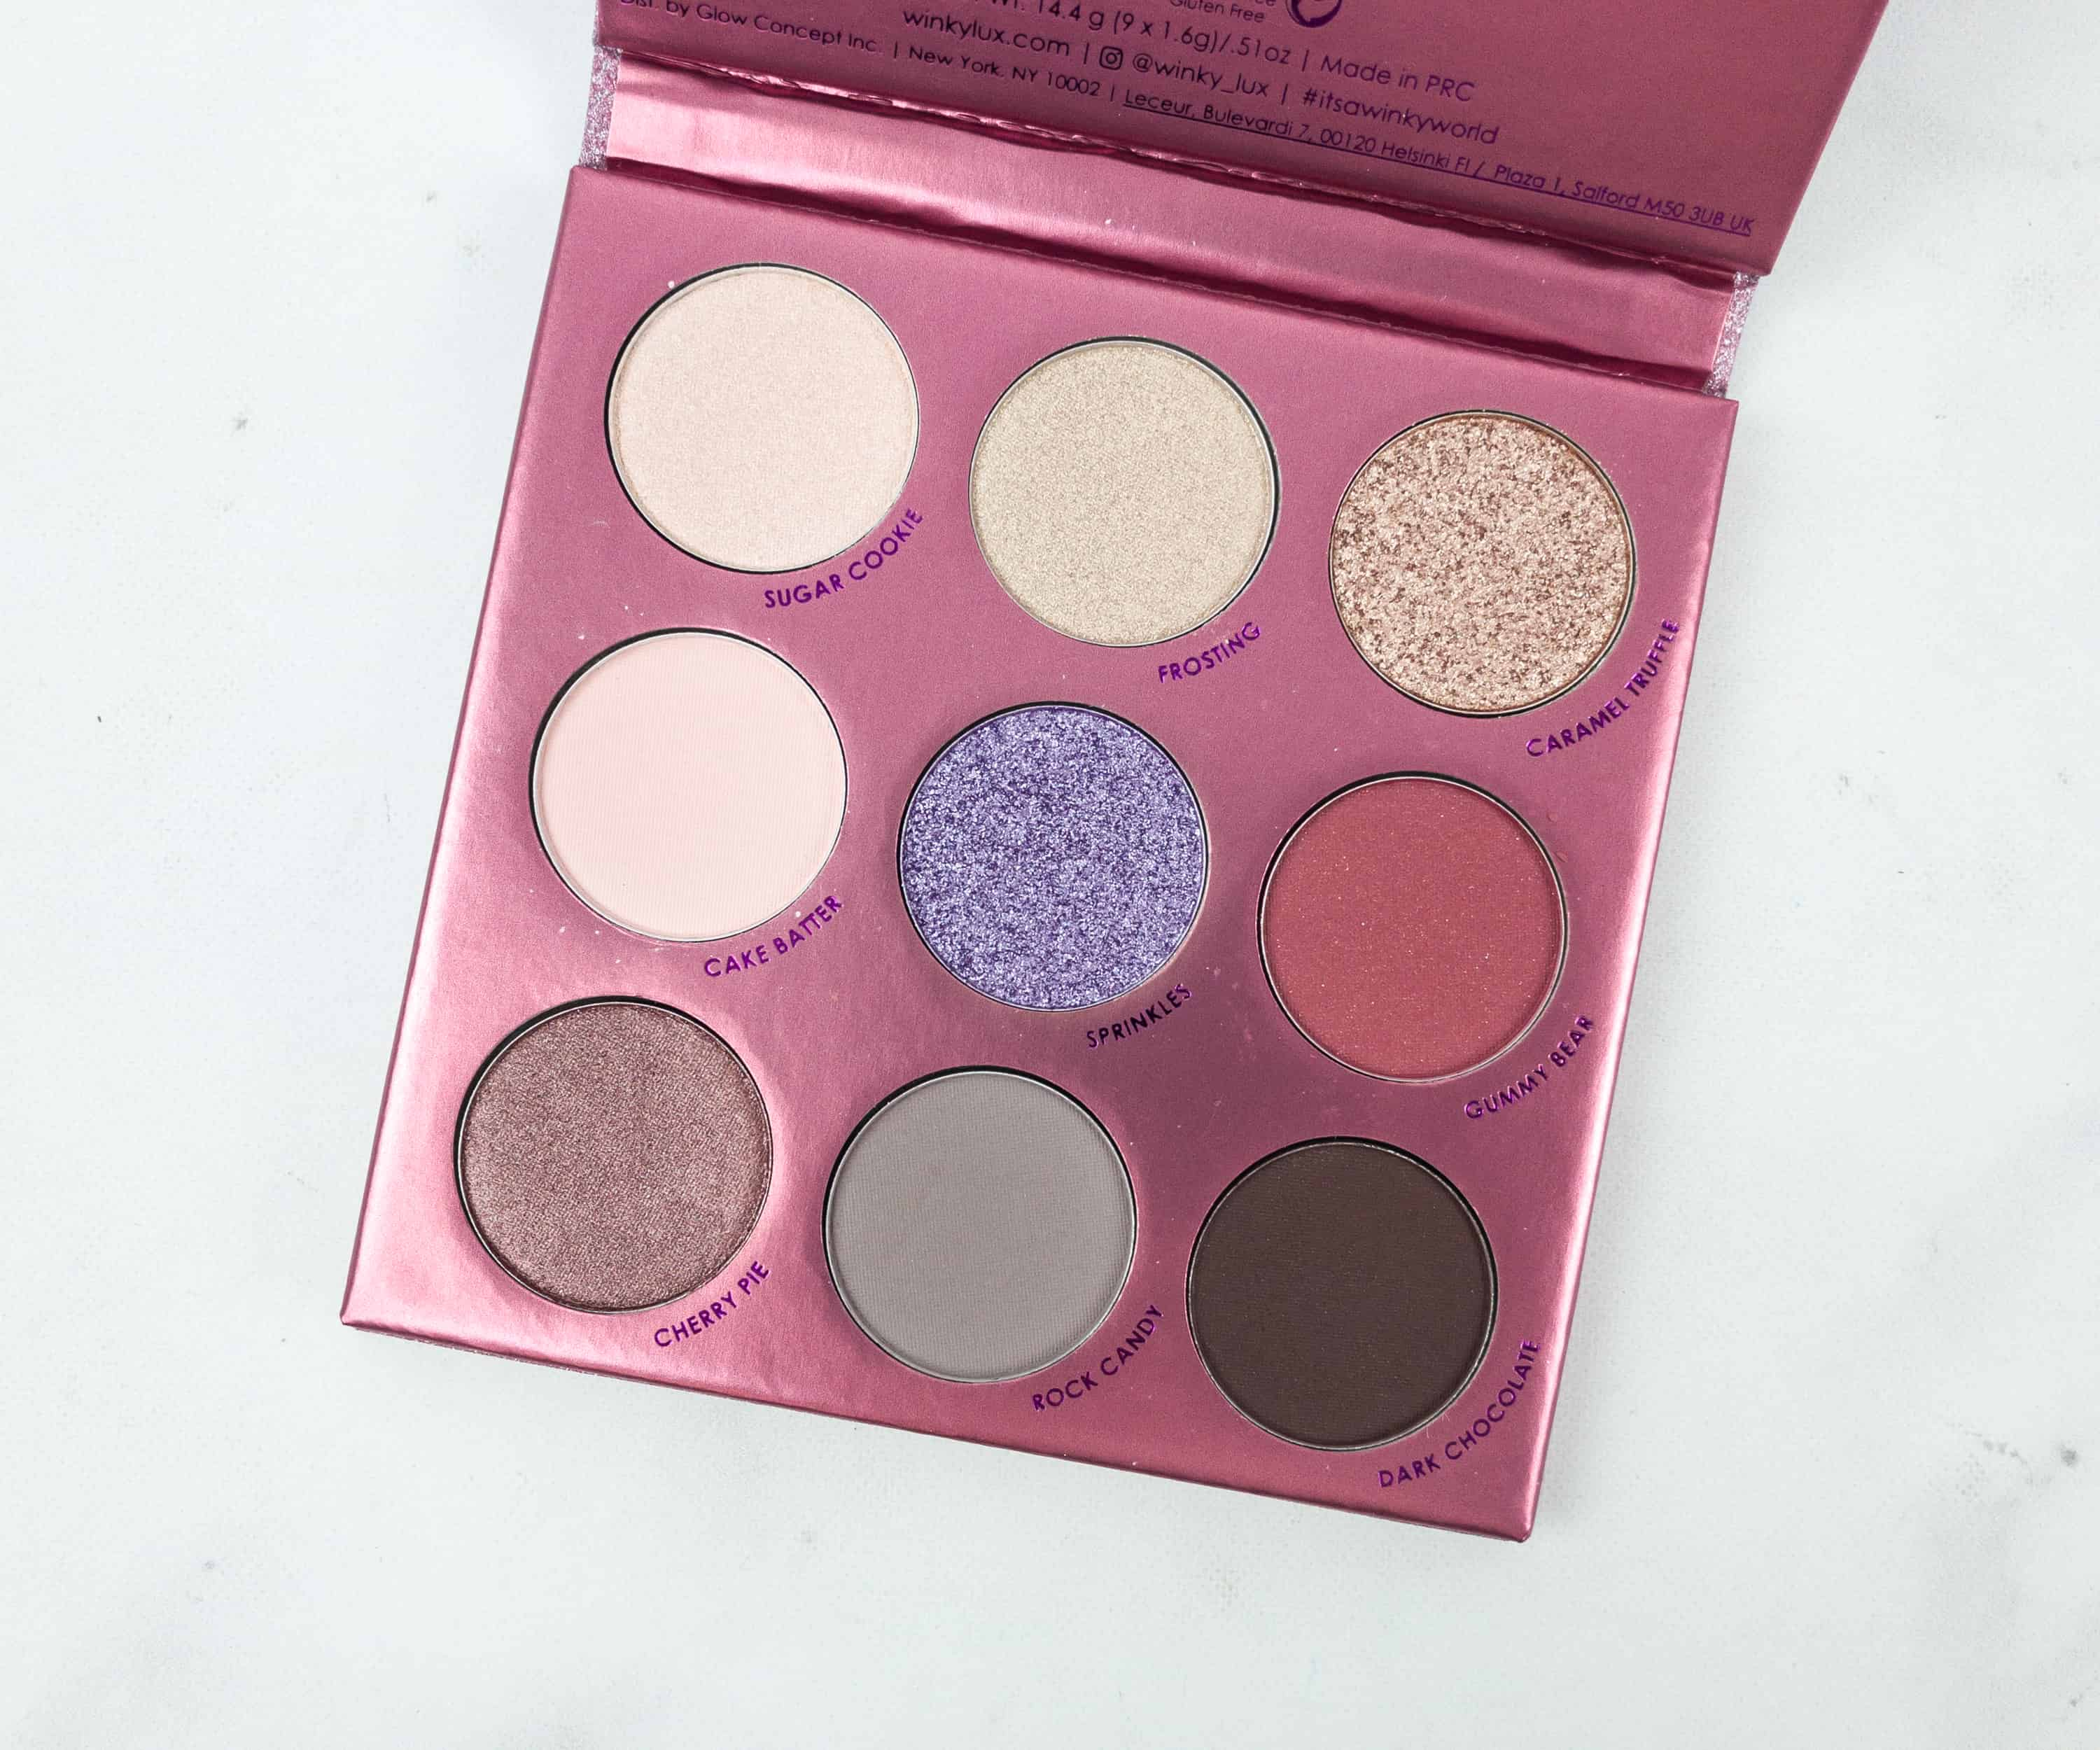 8fbd45ec49eb It s highly pigmented and the formula is easily blendable. You can pull off  a simple look